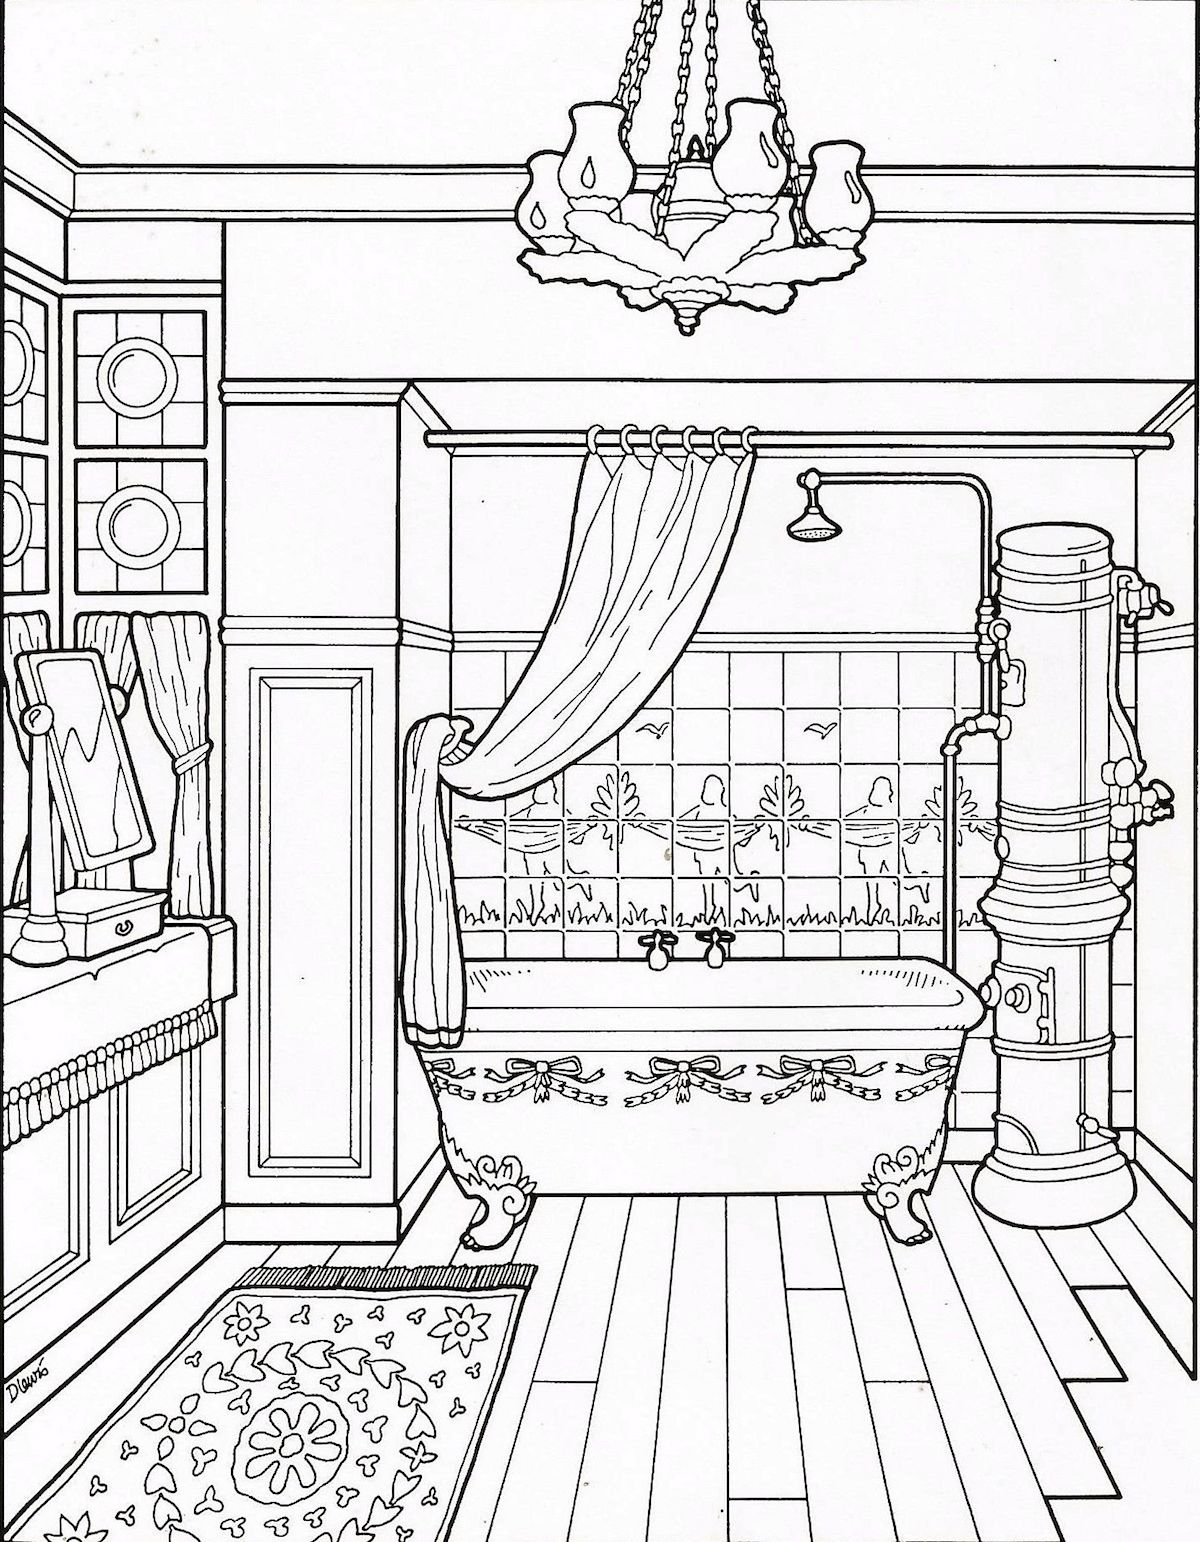 Interiors And Furniture Design Coloring Pages For Advanced Colorers